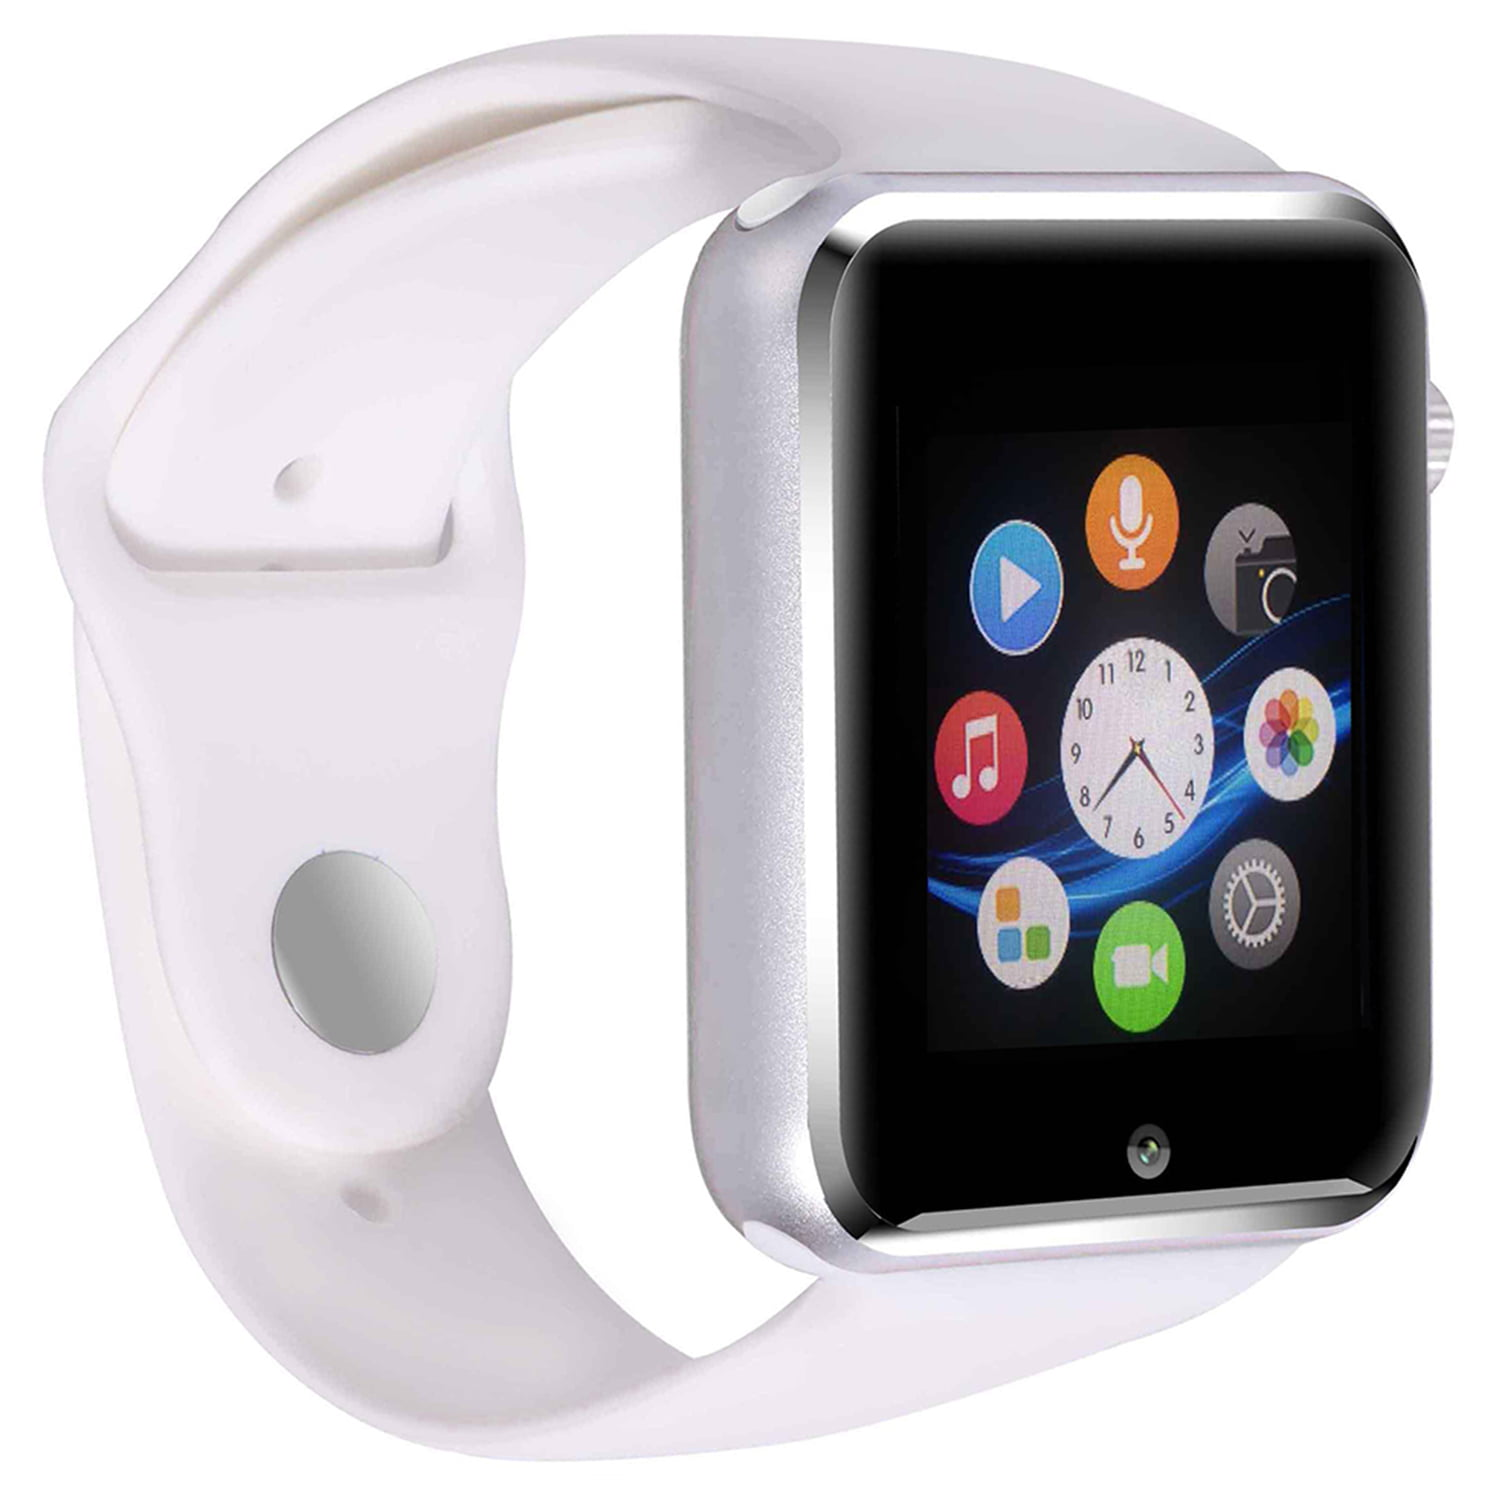 able watches will great apps in phone send texts watchos start i apple and things to do watch be calls